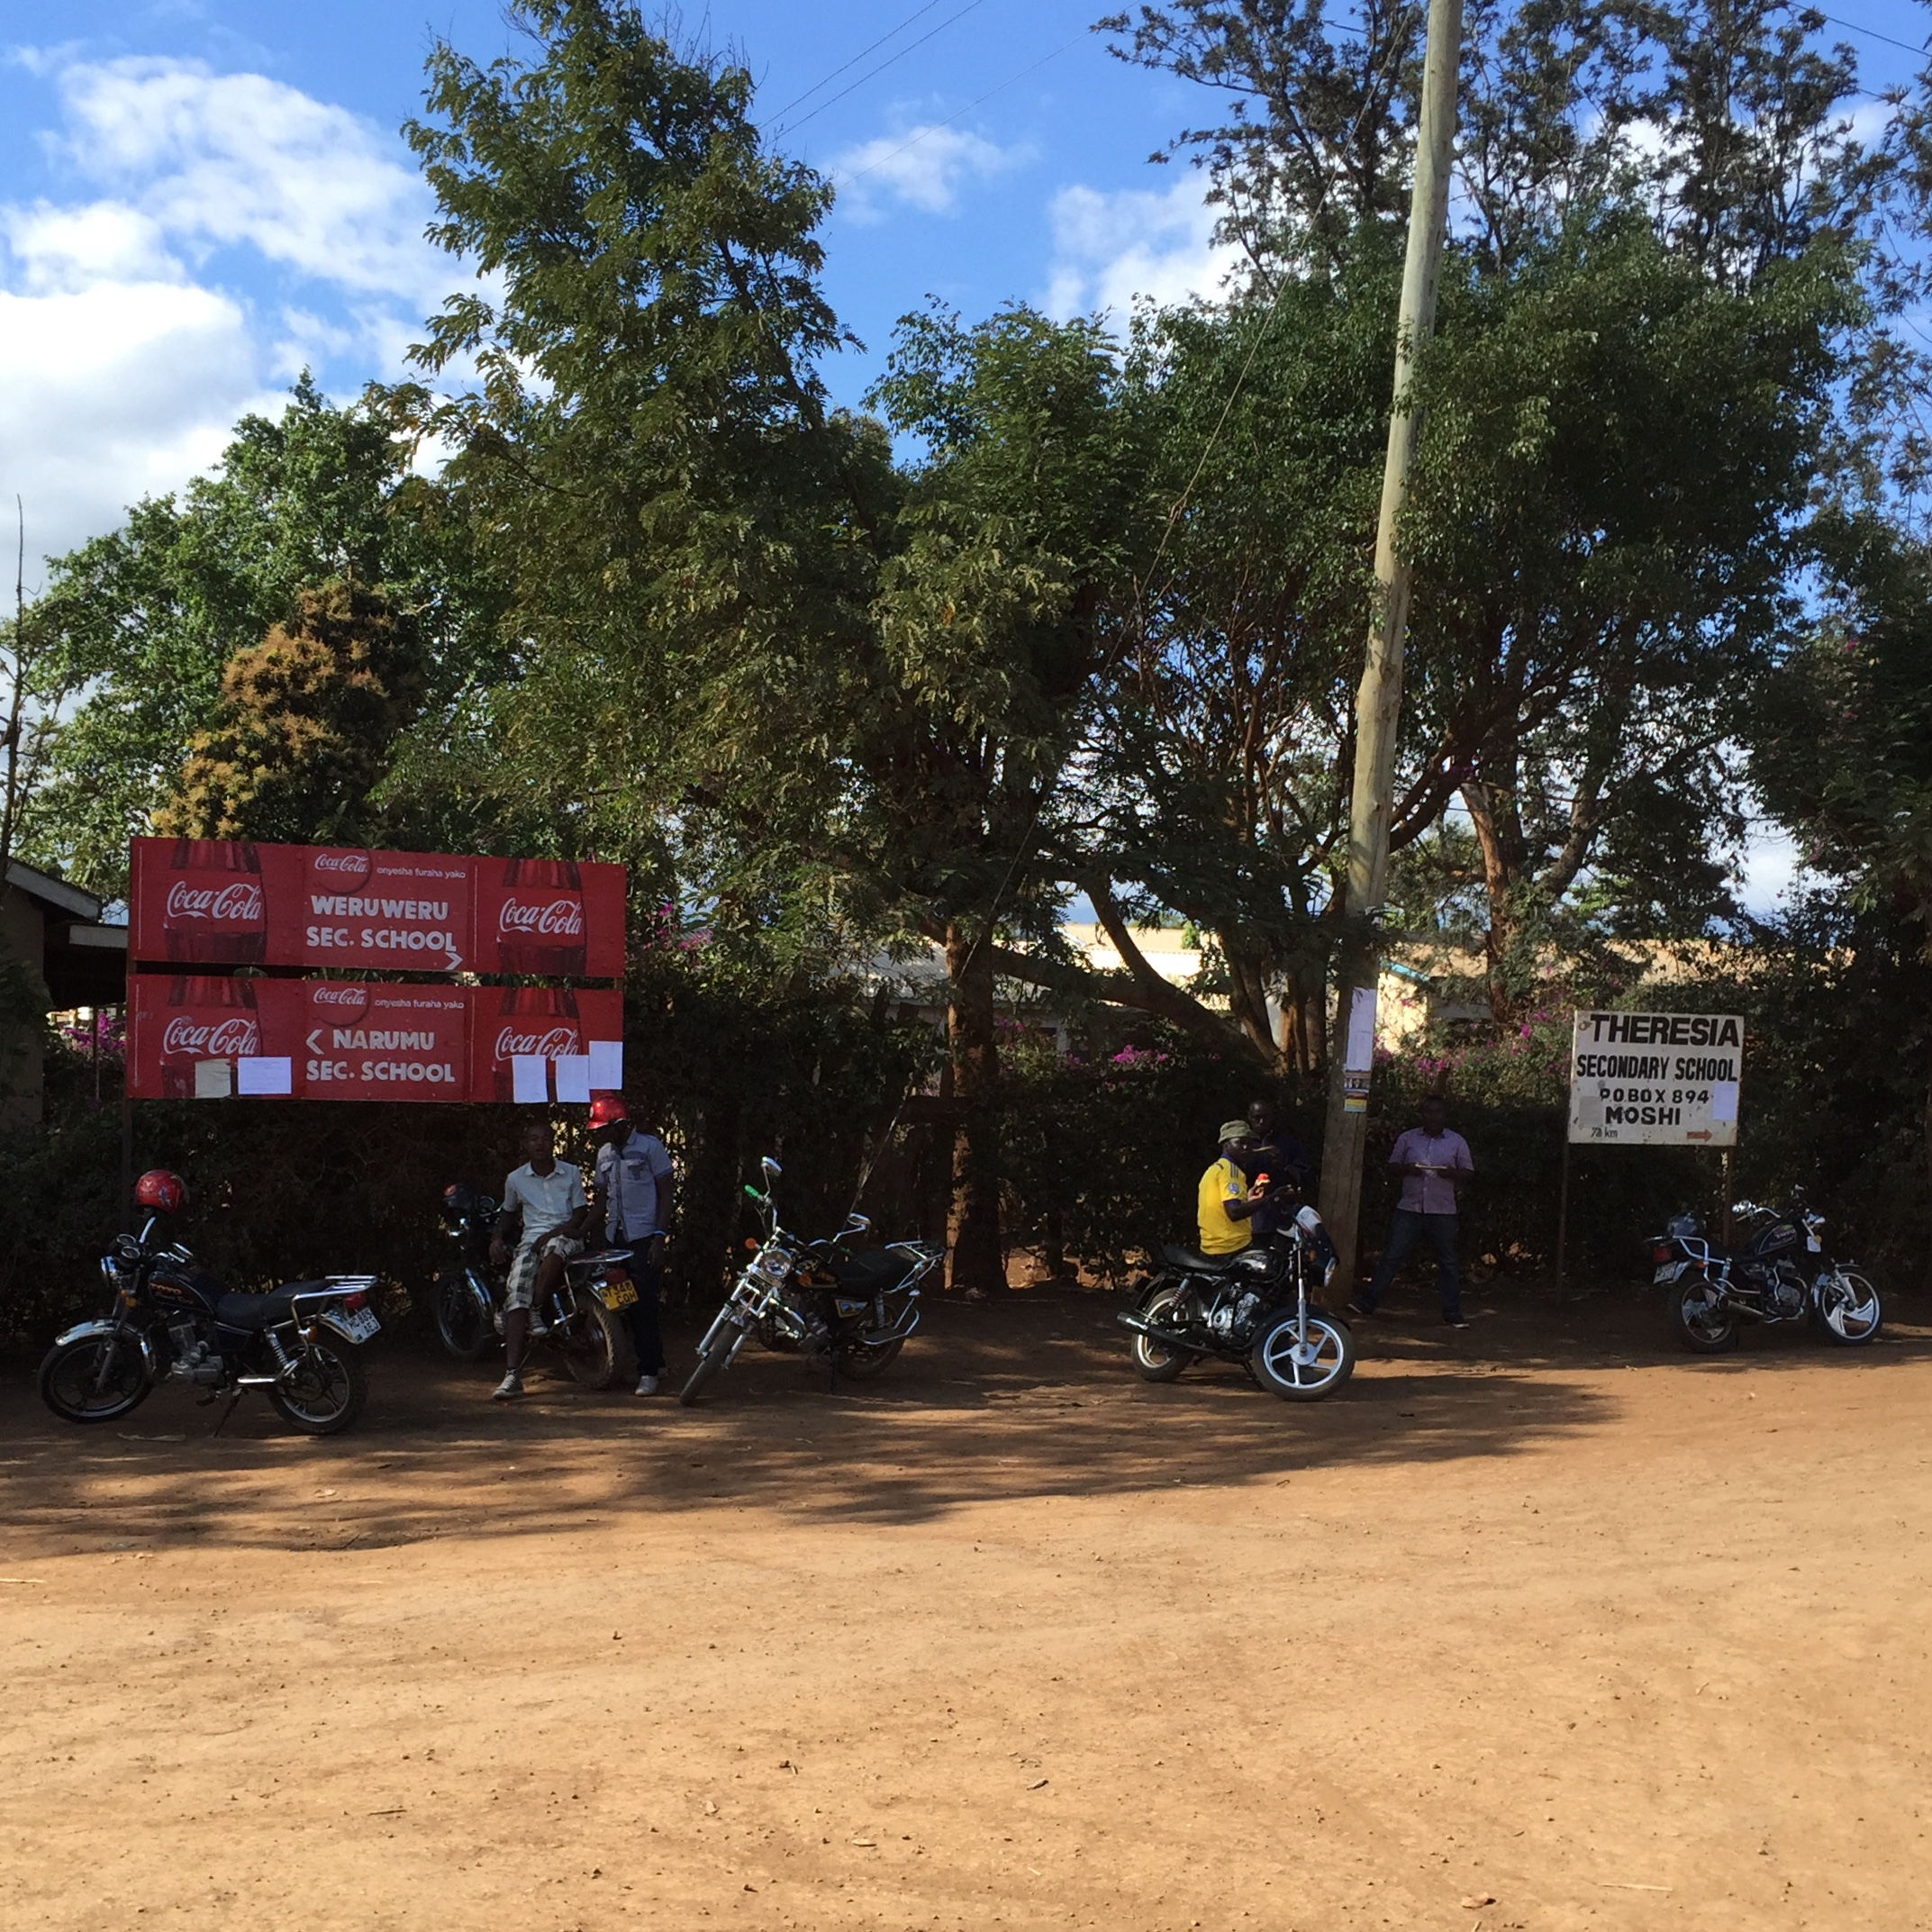 Some locals with their motorbikes gathered outside the school in Weru Weru. I guess the school serves Coke?!